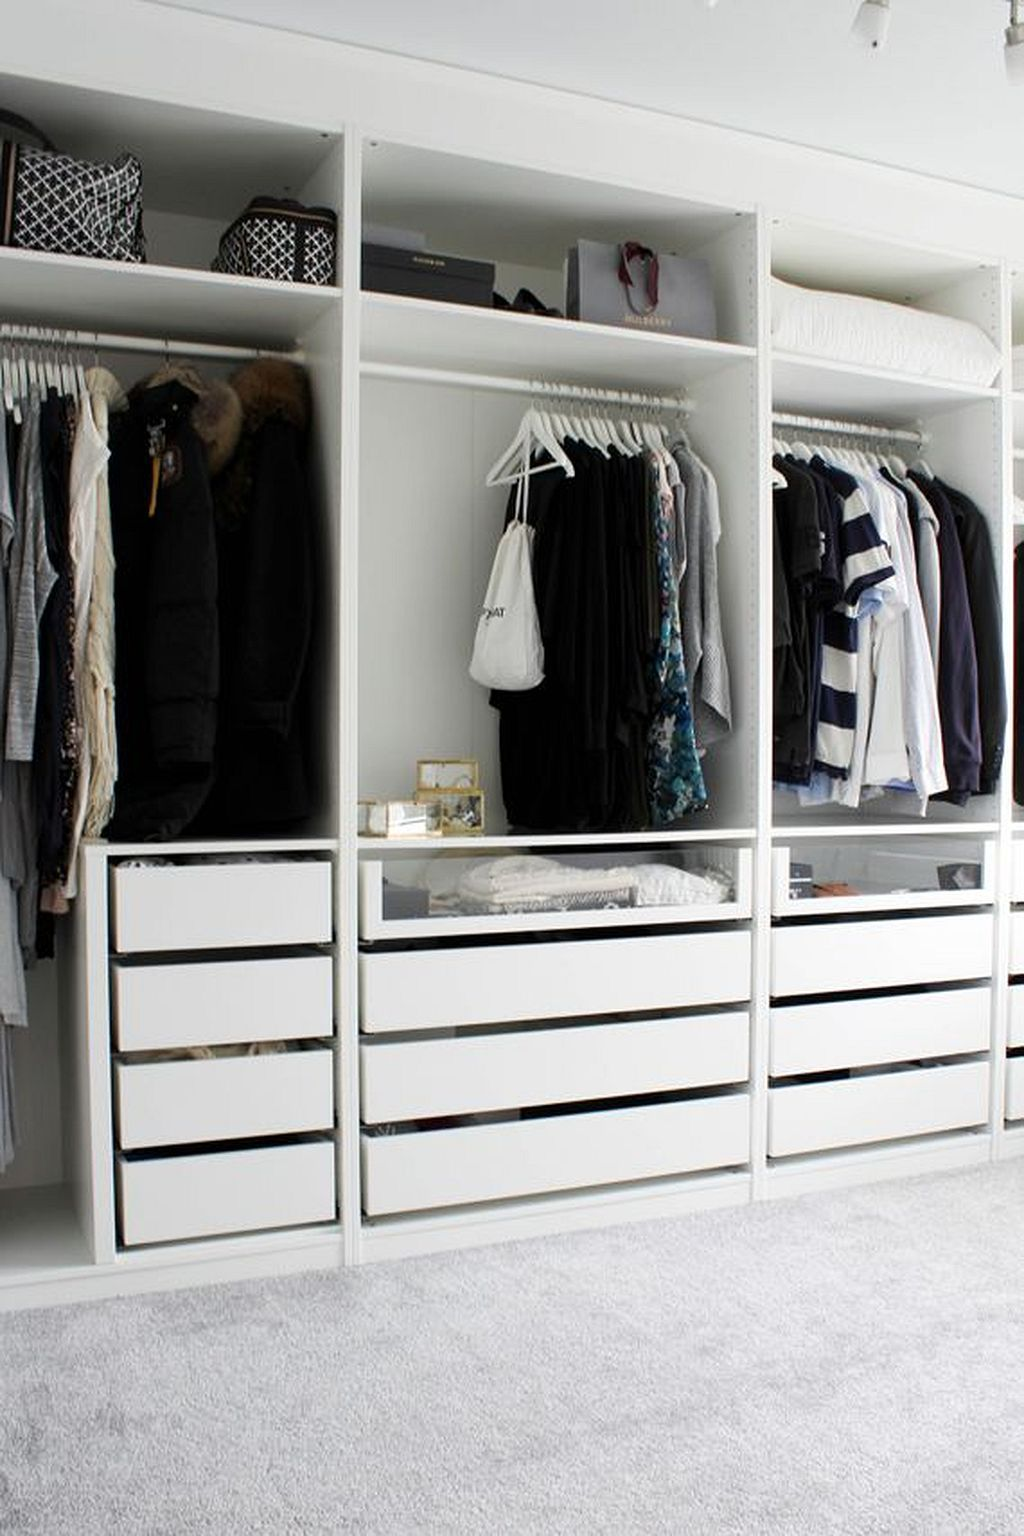 Create More Space In Your Homes With Ikea Pax Closet Ikea Pax Closet Ikea Pax Ikea Pax Wardrobe